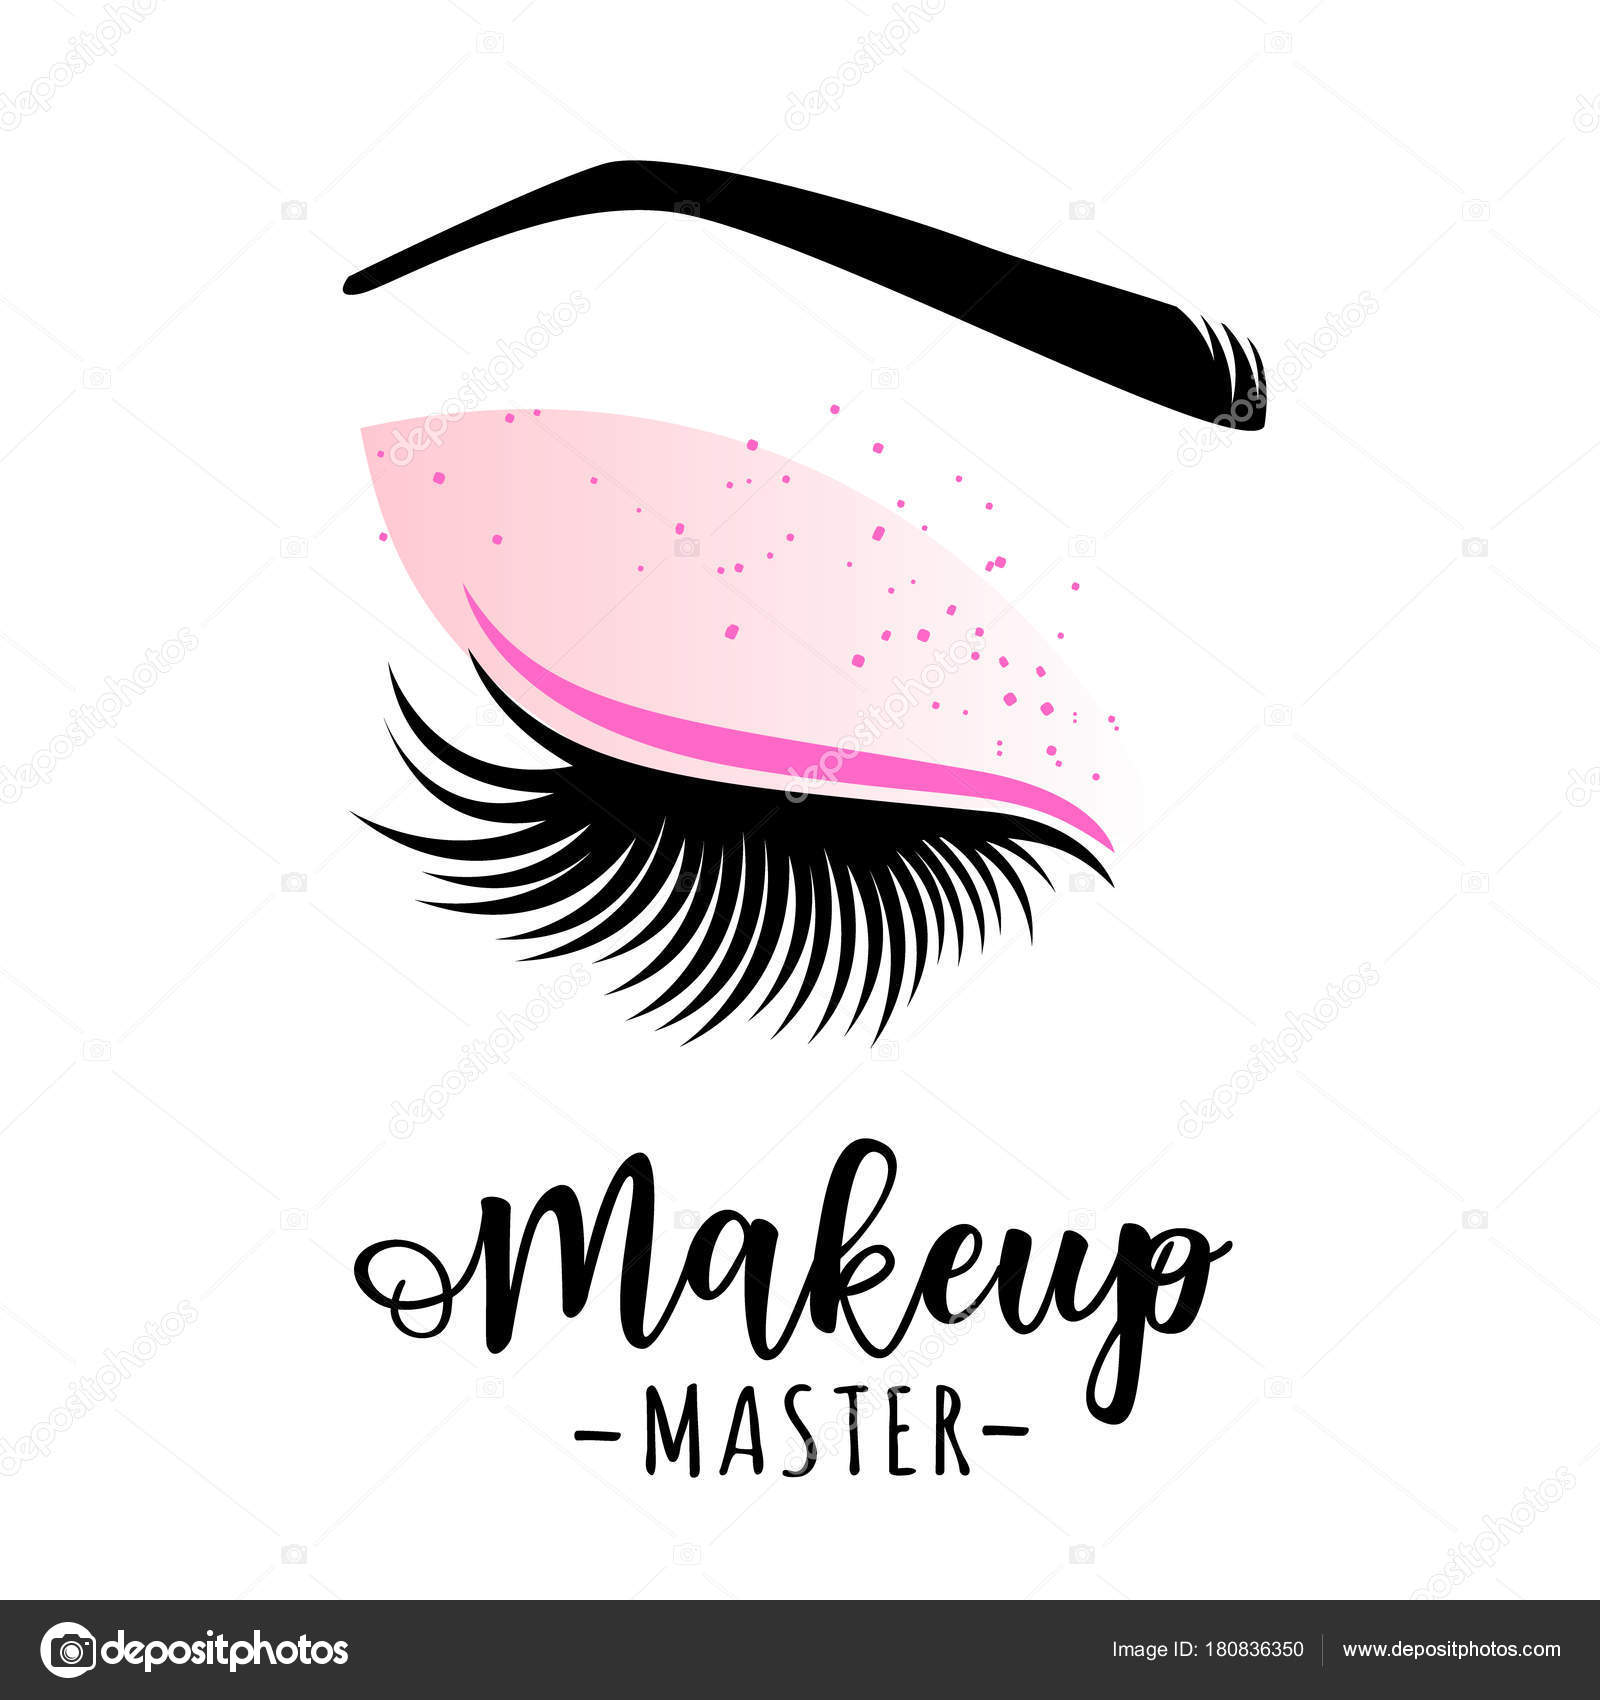 7dd1ead318e Makeup master logo. Vector illustration of lashes and brow. For beauty  salon, lash extensions maker, brow master. — Vector by Volchonok